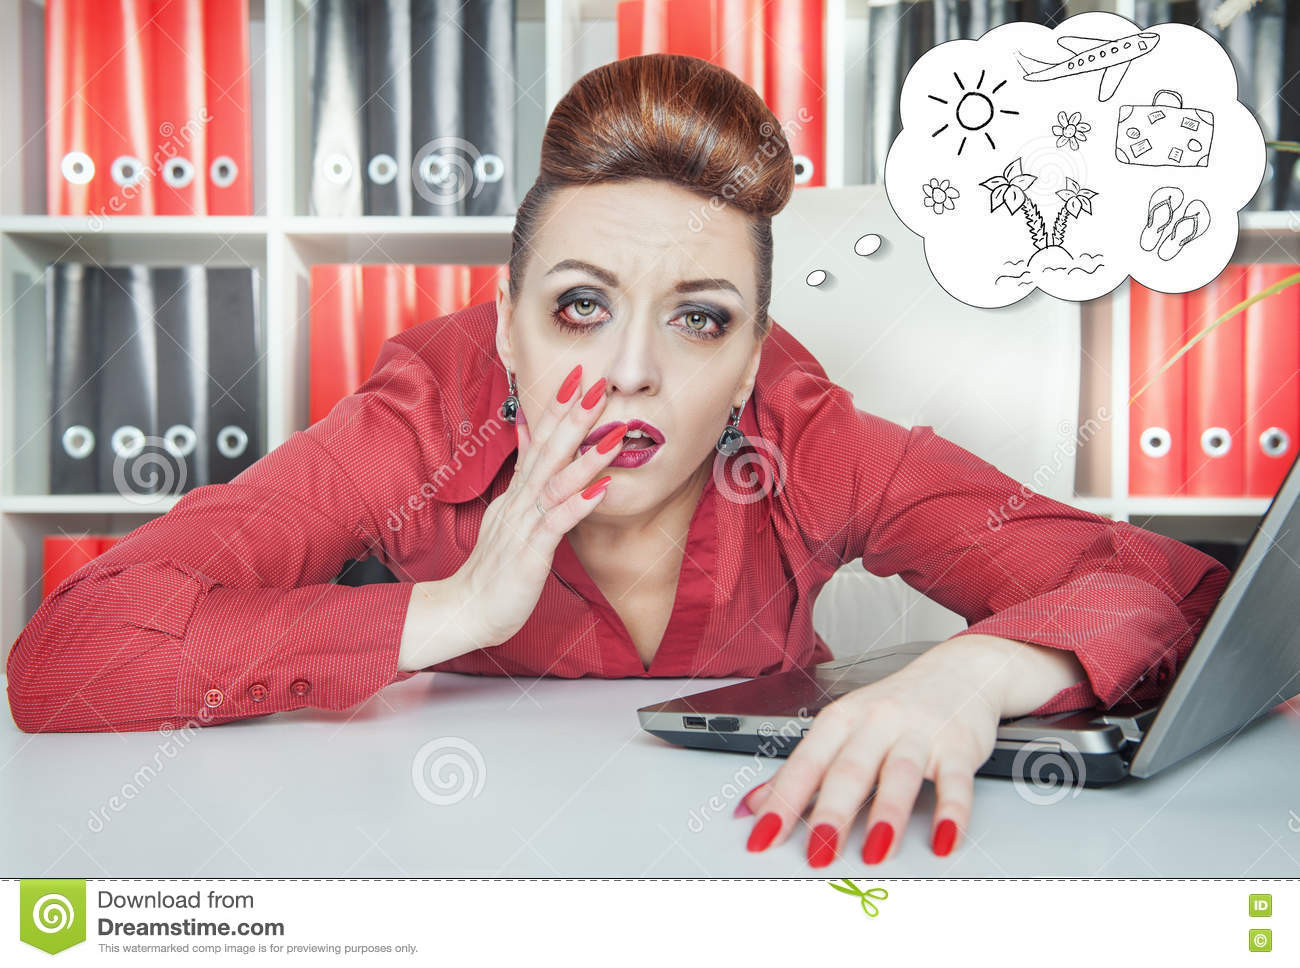 bored business w dreaming about holiday in office stock photo tired bored businessw dreaming about holiday in office royalty stock photography